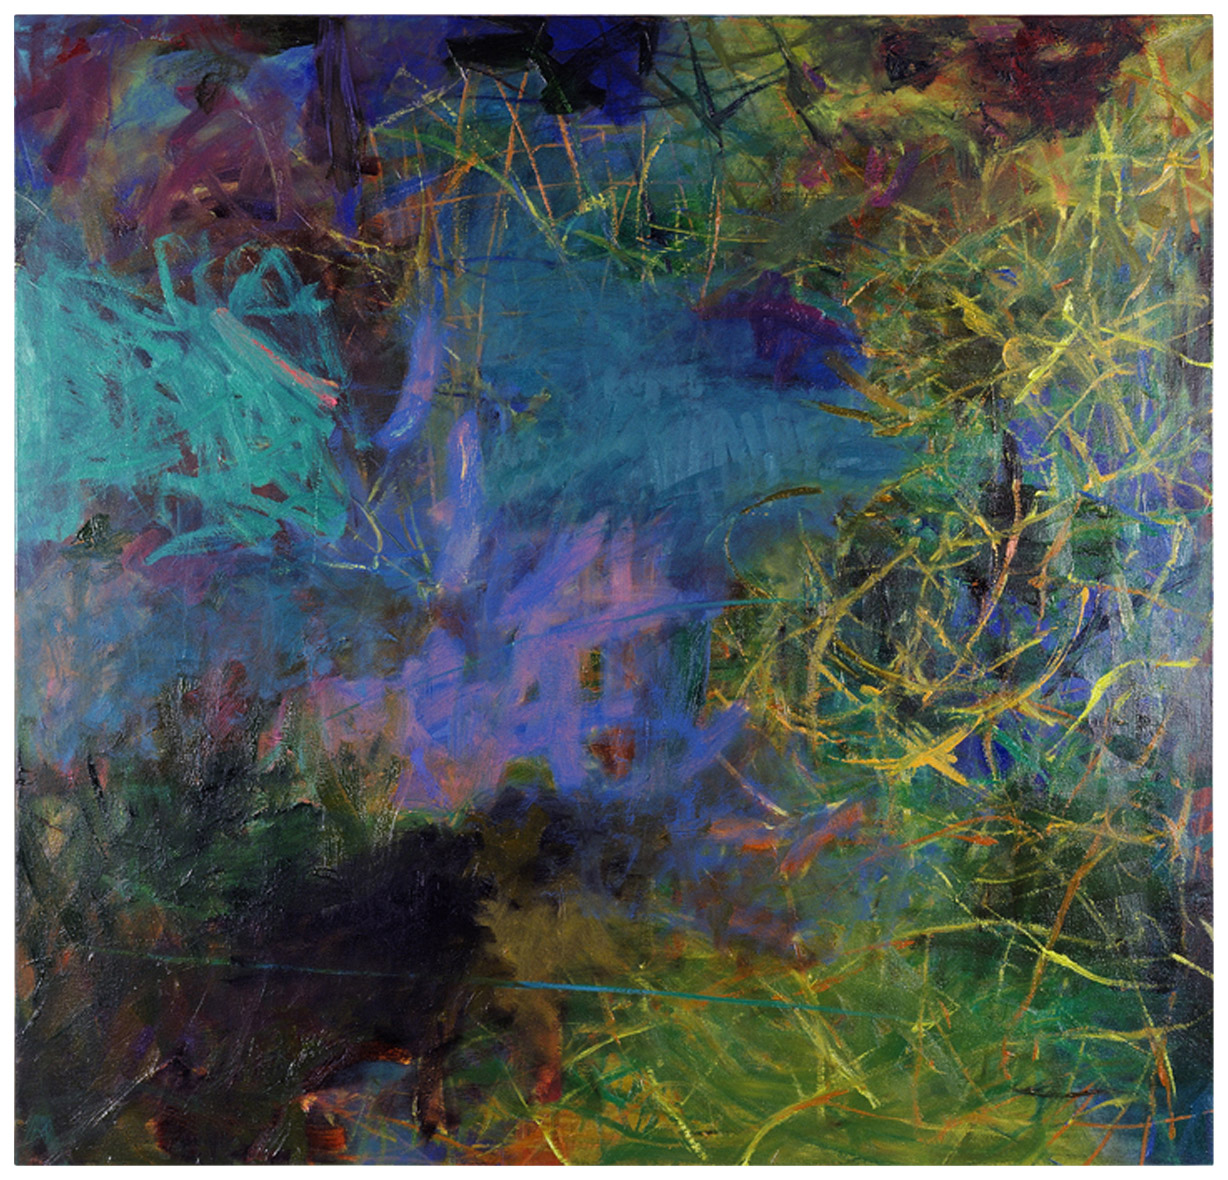 Loon   53 × 55 inches 134 × 140 cm Oil on canvas 2006